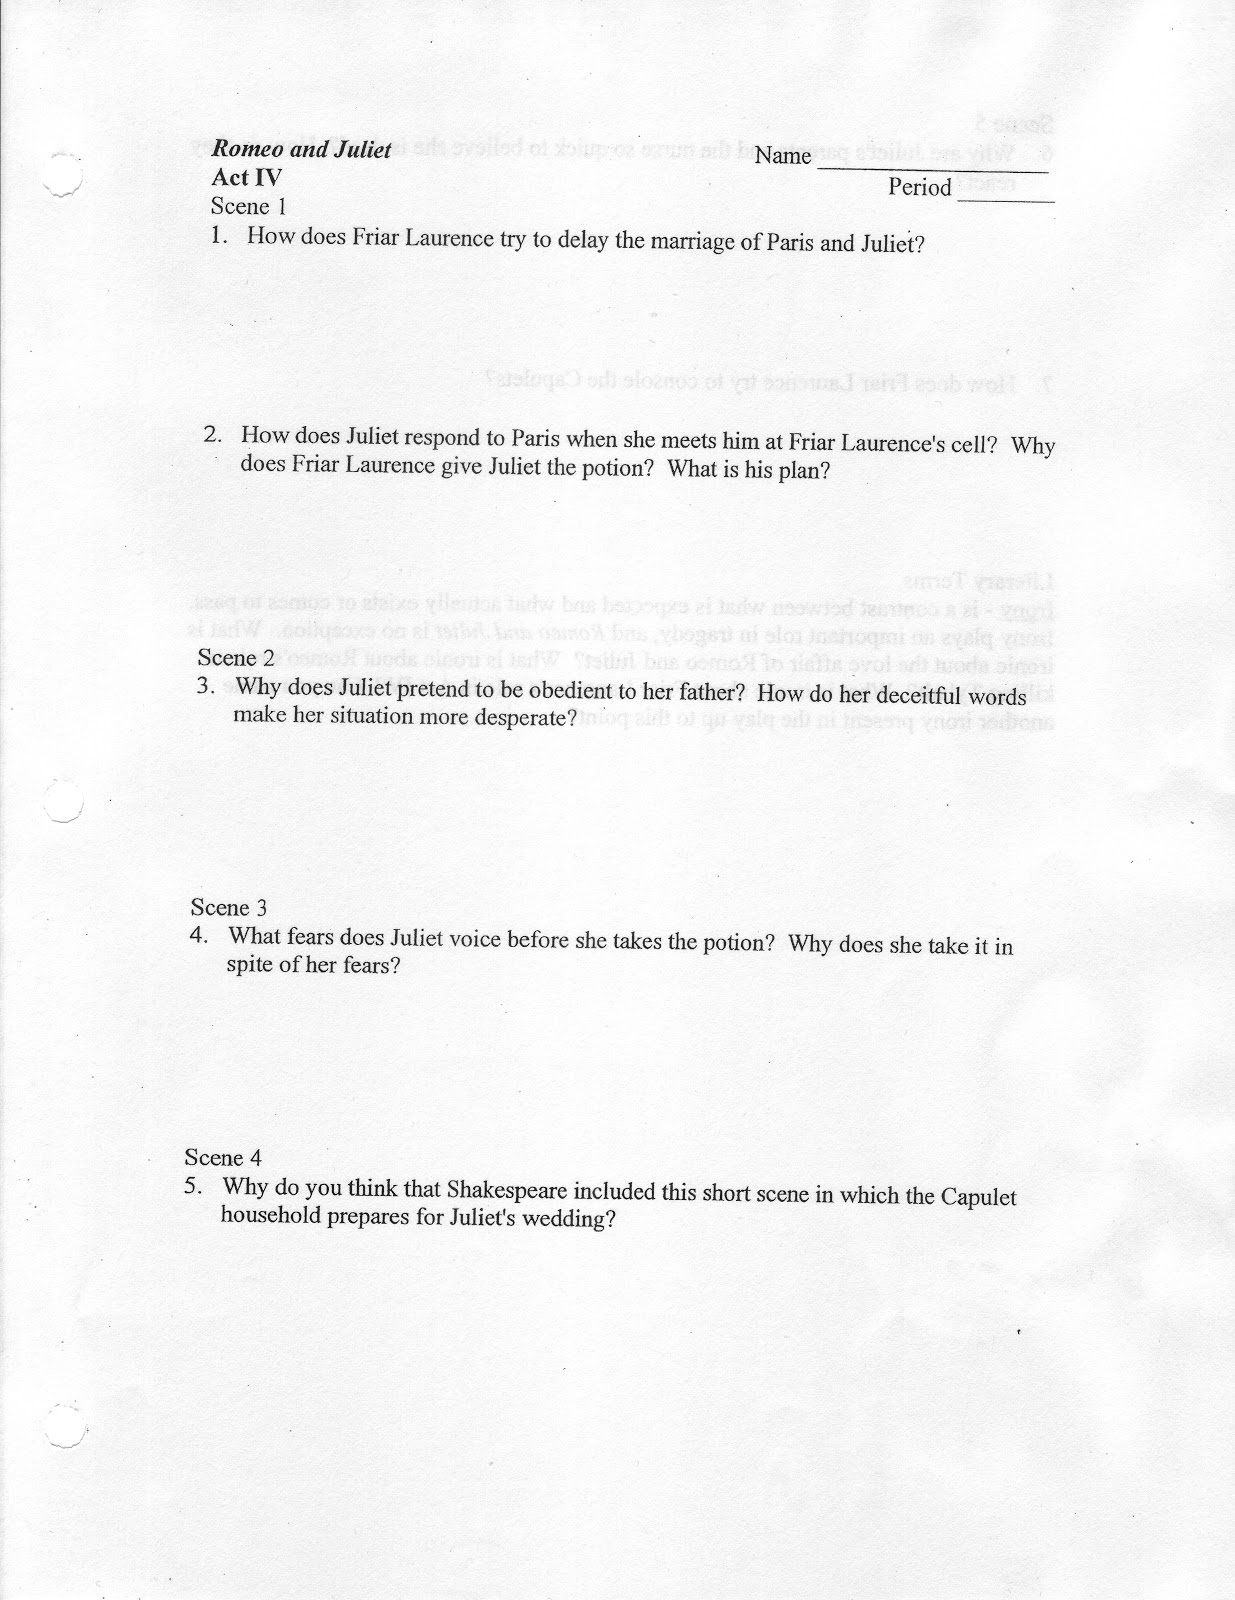 Stewies English Romeo And Juliet Act Iv Study Guide Romeo And Juliet Act Iv Study Guide